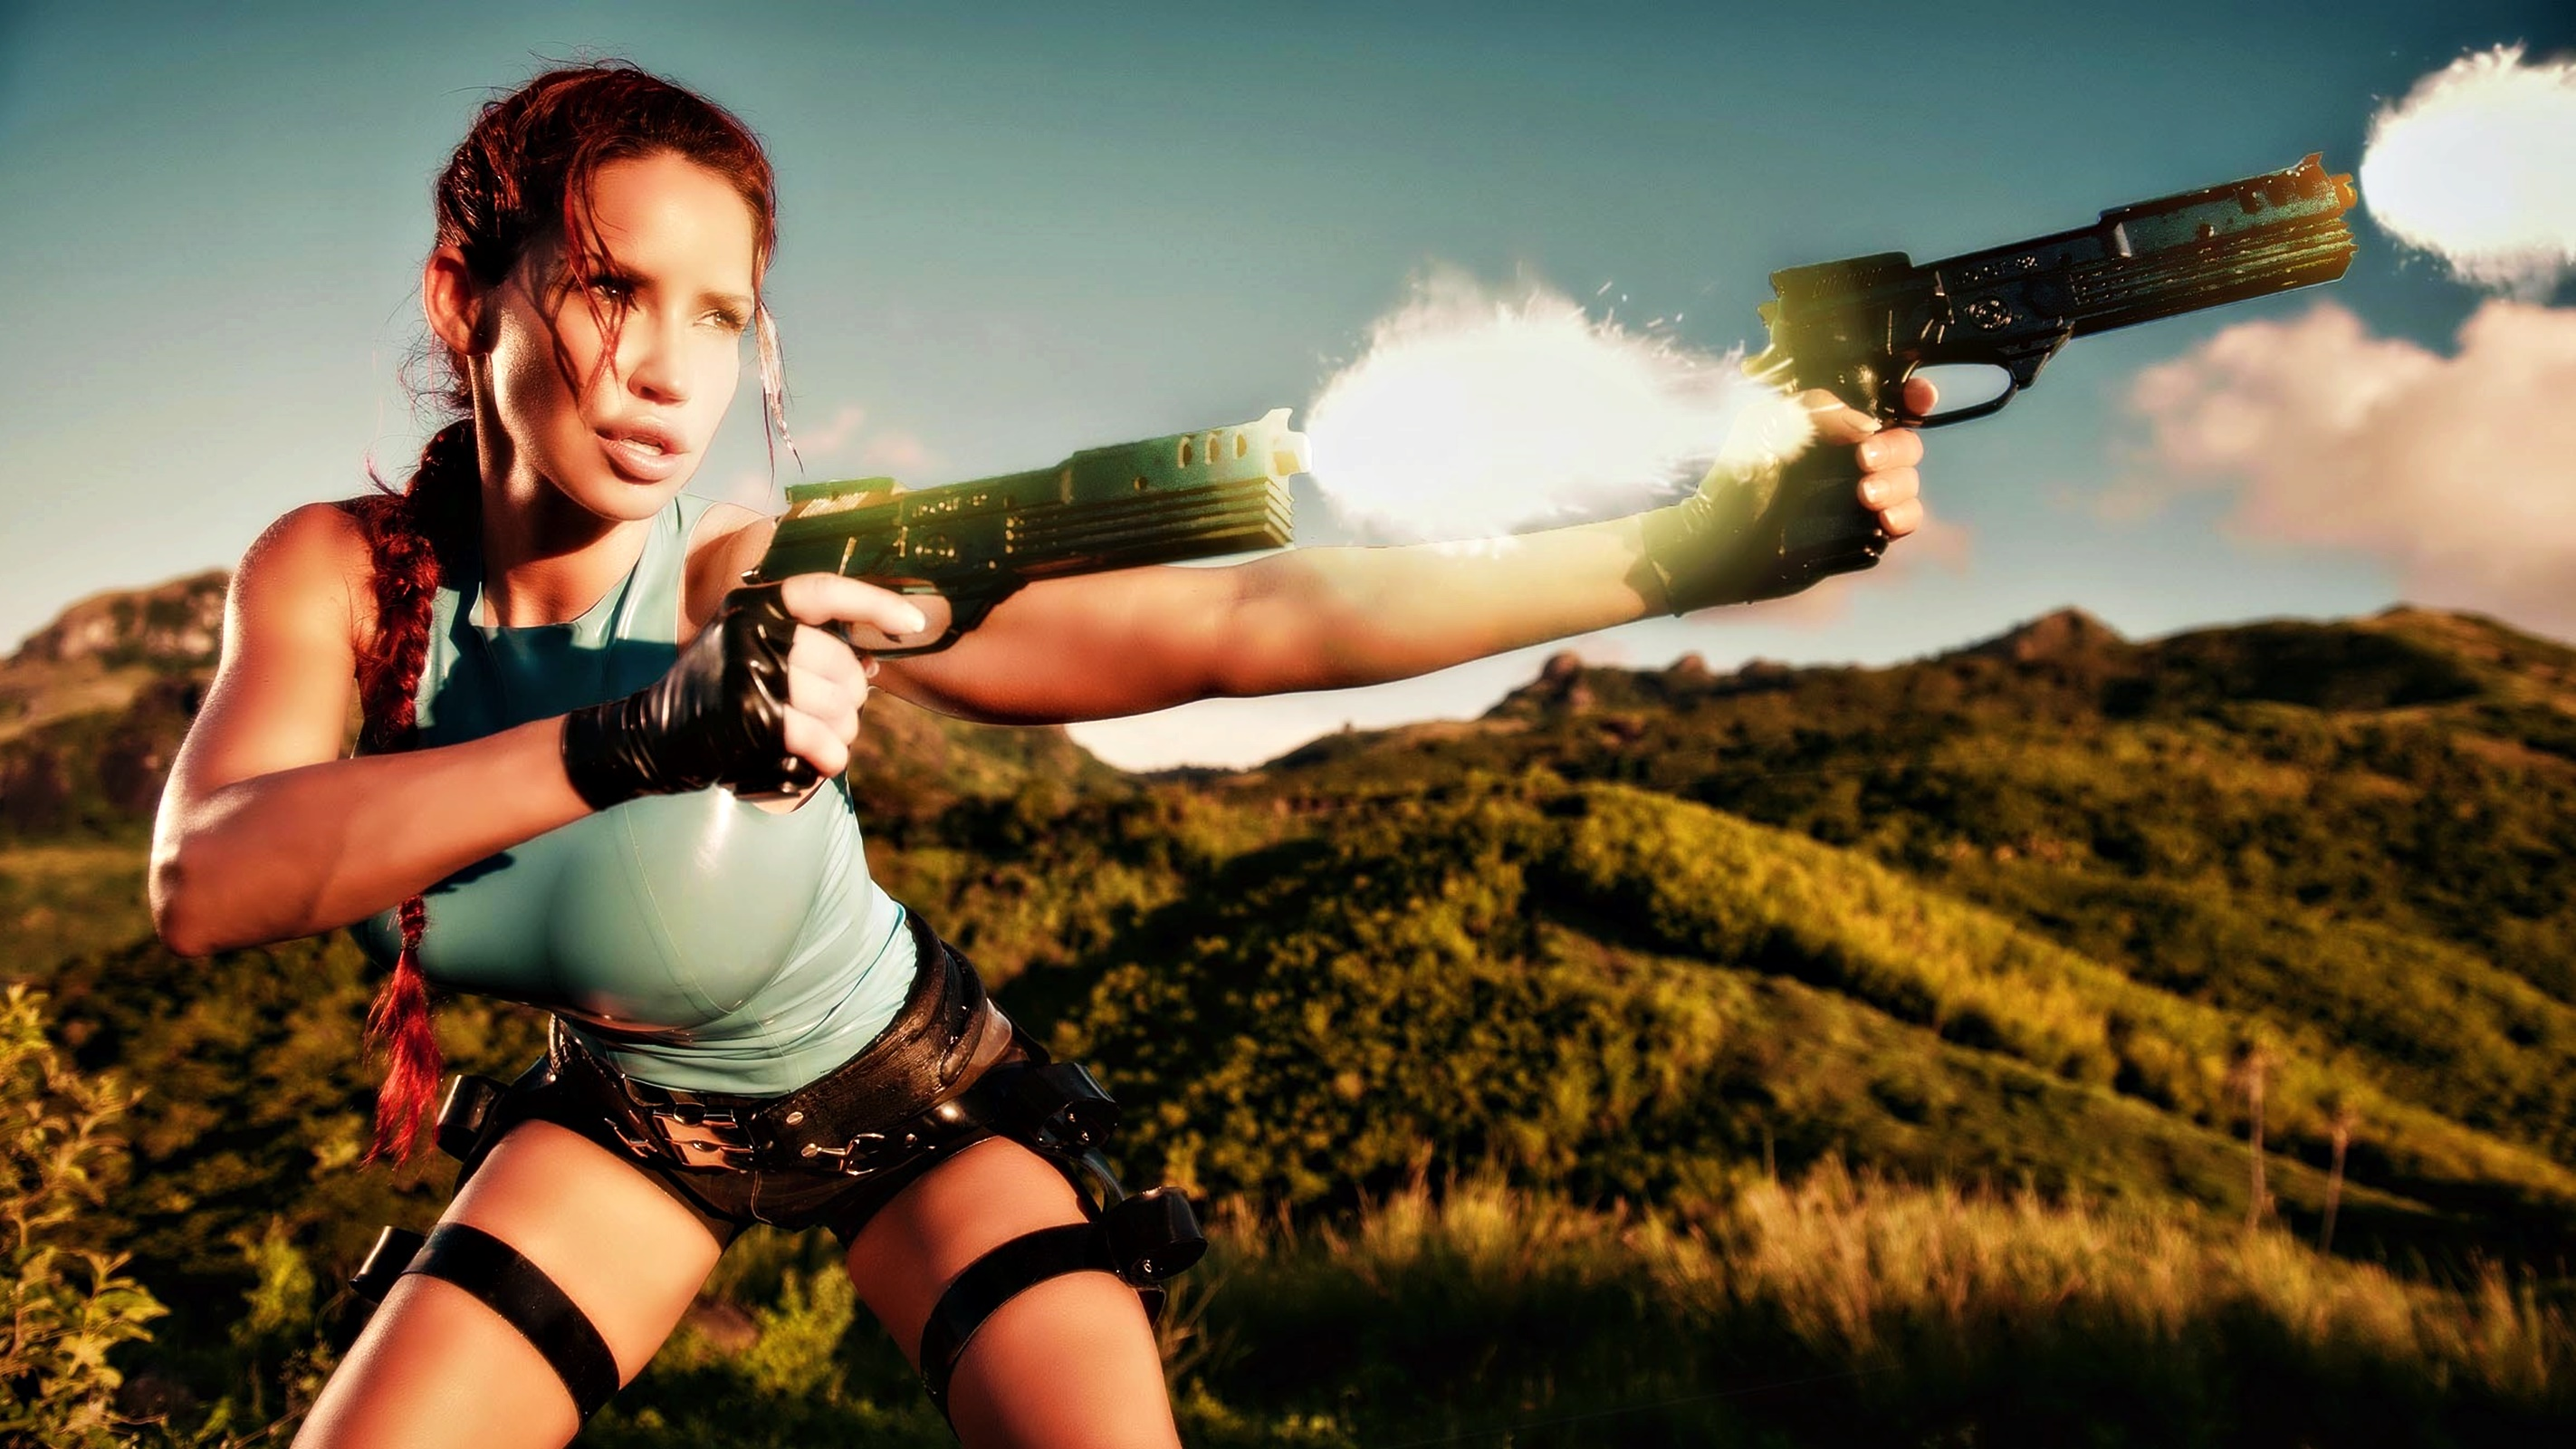 317 Bianca Beauchamp Hd Wallpapers And Photos Ftopxcom